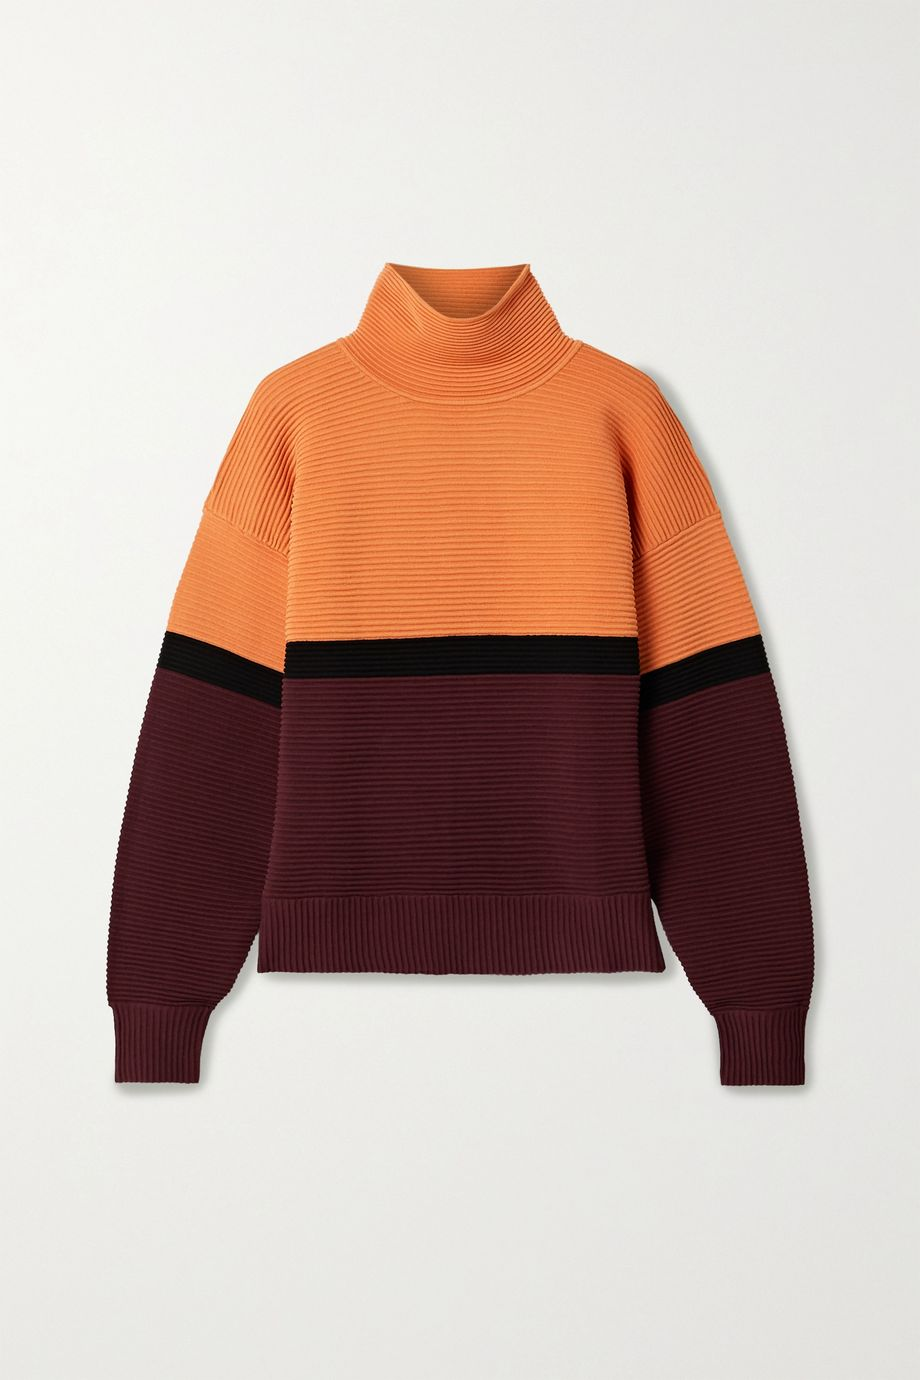 Nagnata + NET SUSTAIN color-block ribbed organic cotton turtleneck sweater